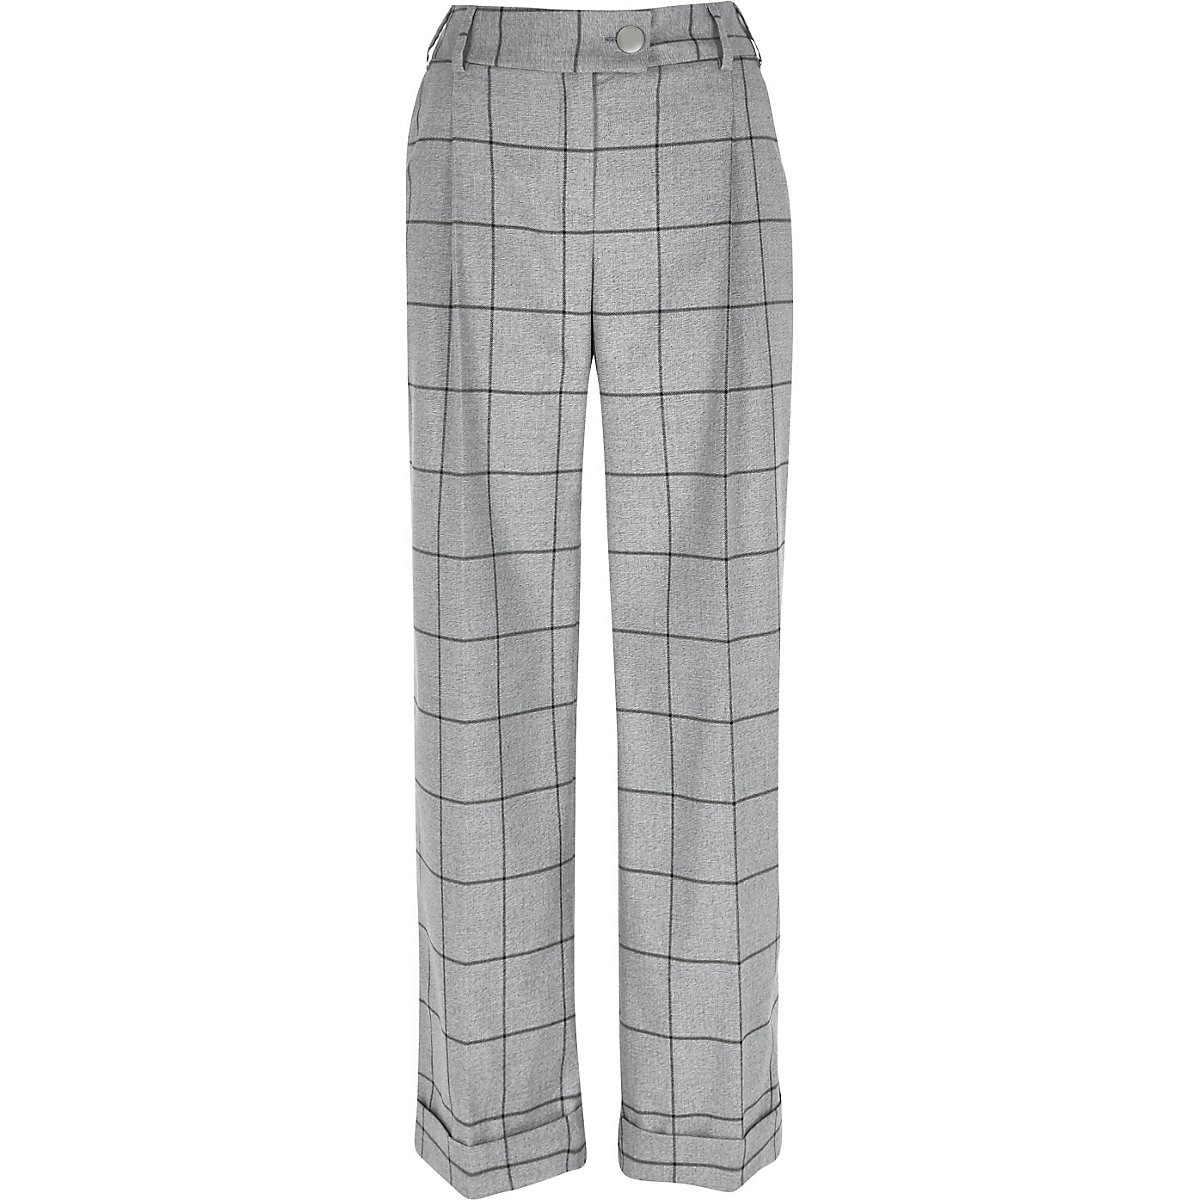 a12ccd645f Grey check wide leg trousers - Wide Leg Trousers - Trousers - women